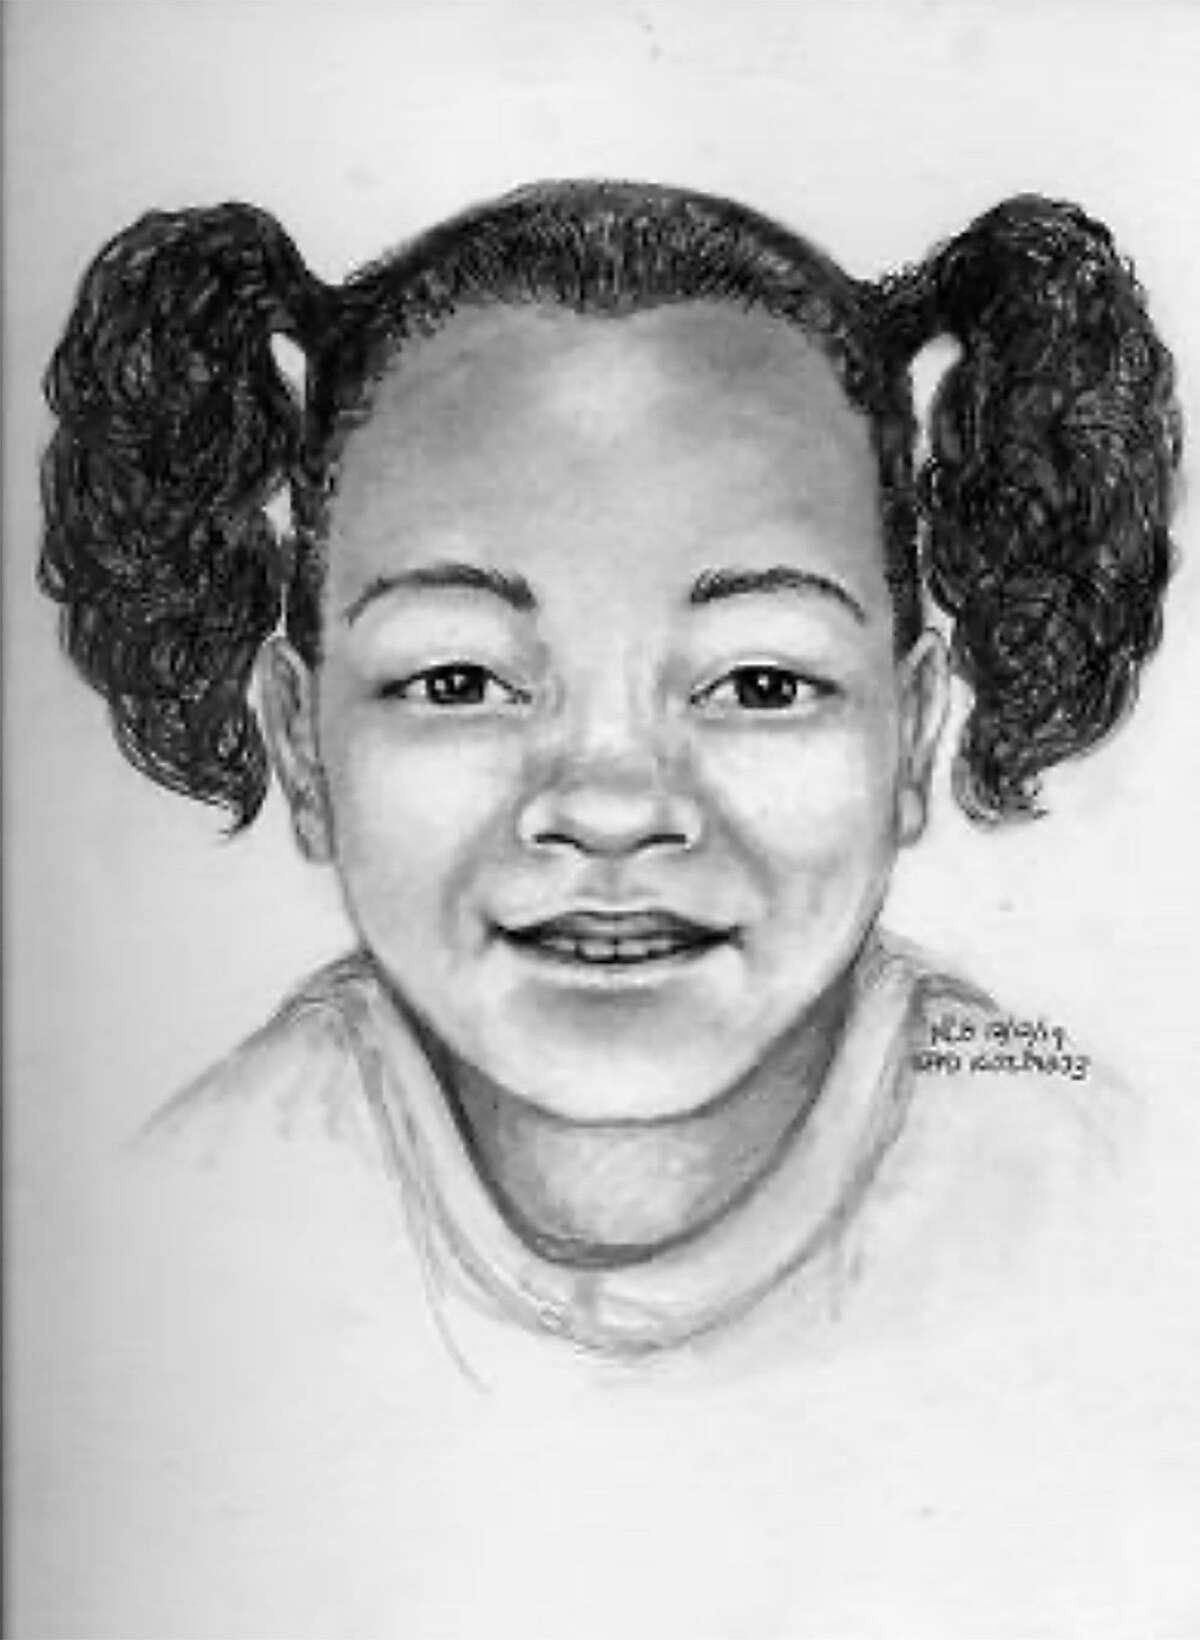 This forensic artist's sketch provided by the San Francisco Police Department shows what missing 7-year-old Arianna Fitts may look like in 2021.